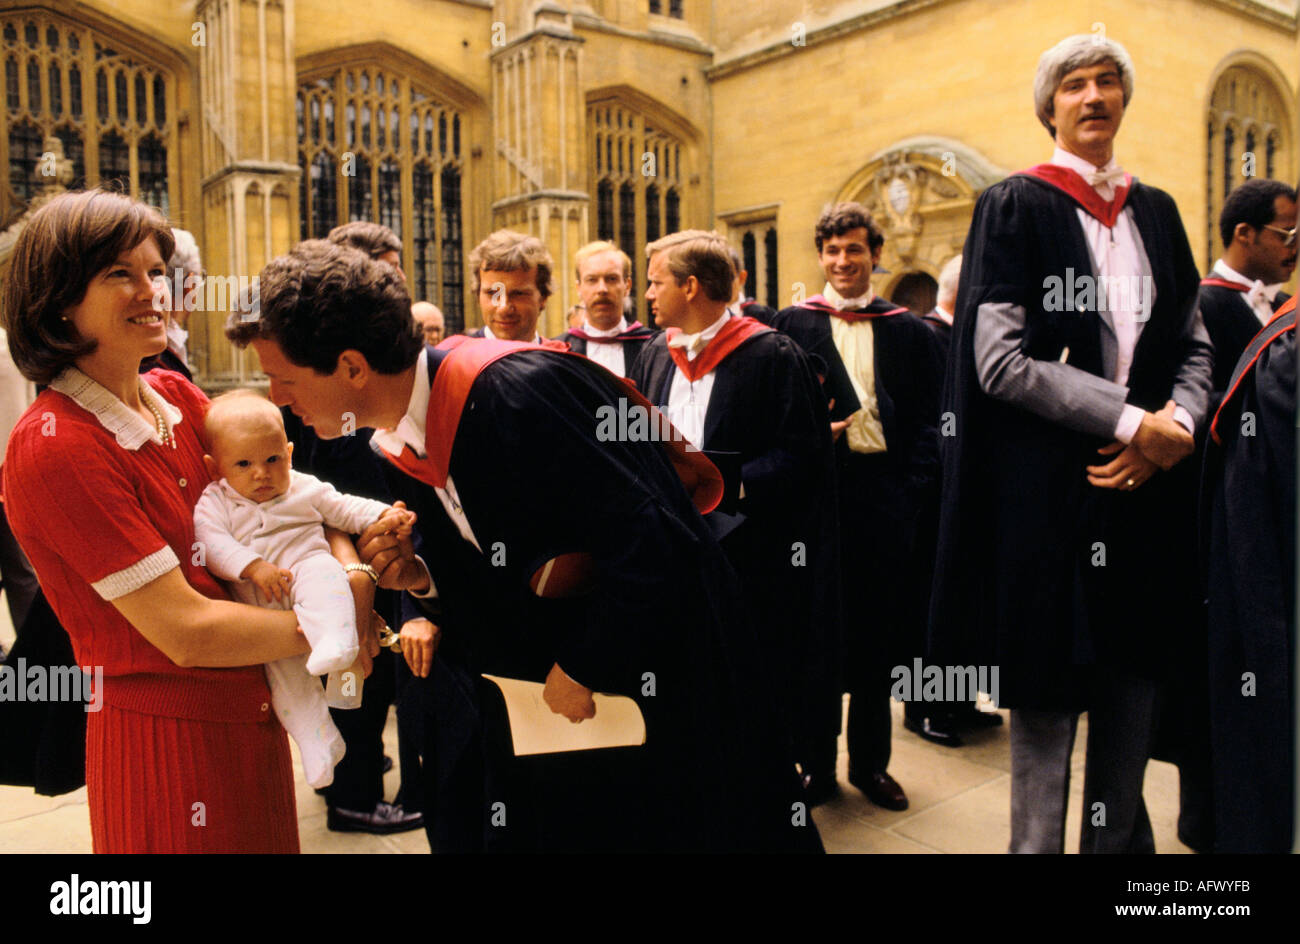 rhodes scholars oxford university graduation day ceremony HOMER SYKES - Stock Image